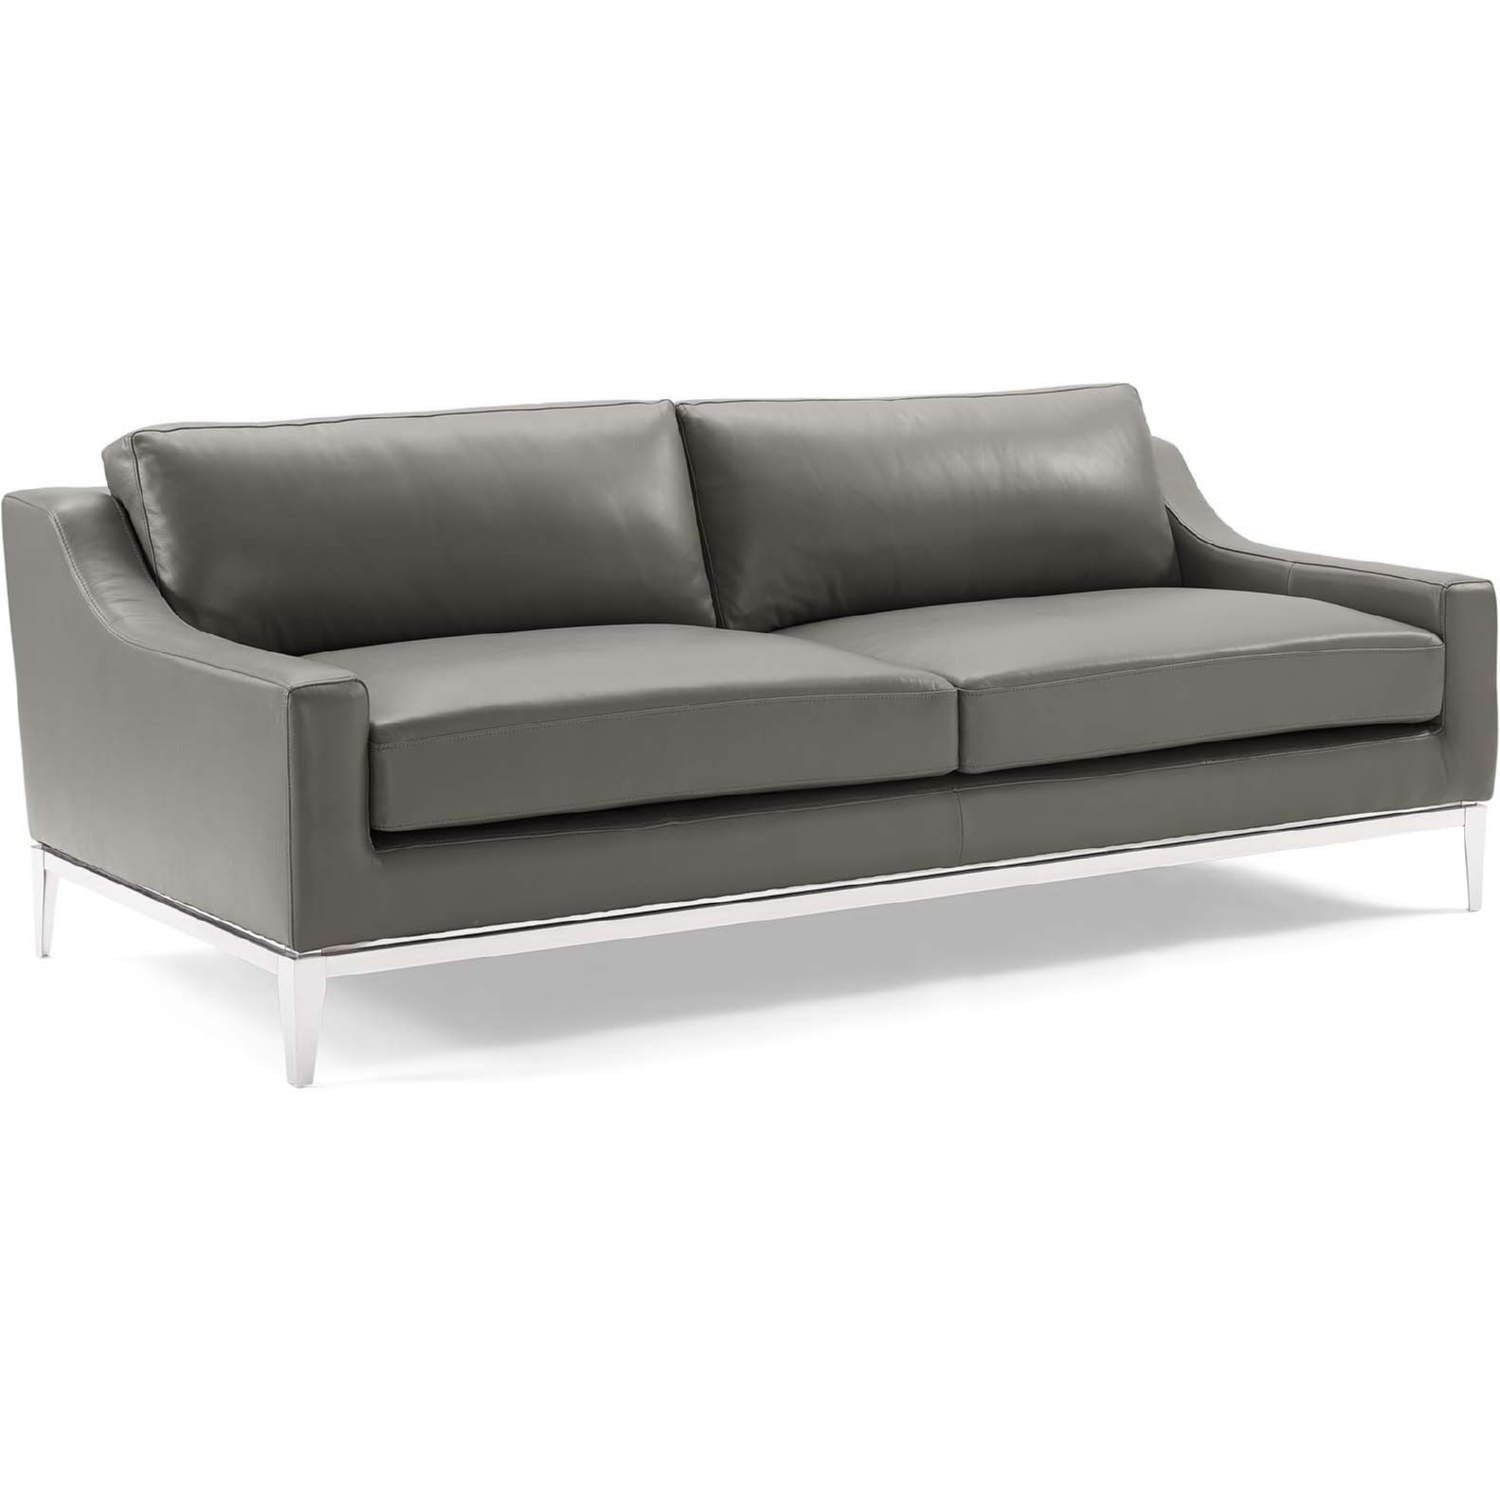 Sofa In Gray Leather Upholstery W/ Steel Base - image-0